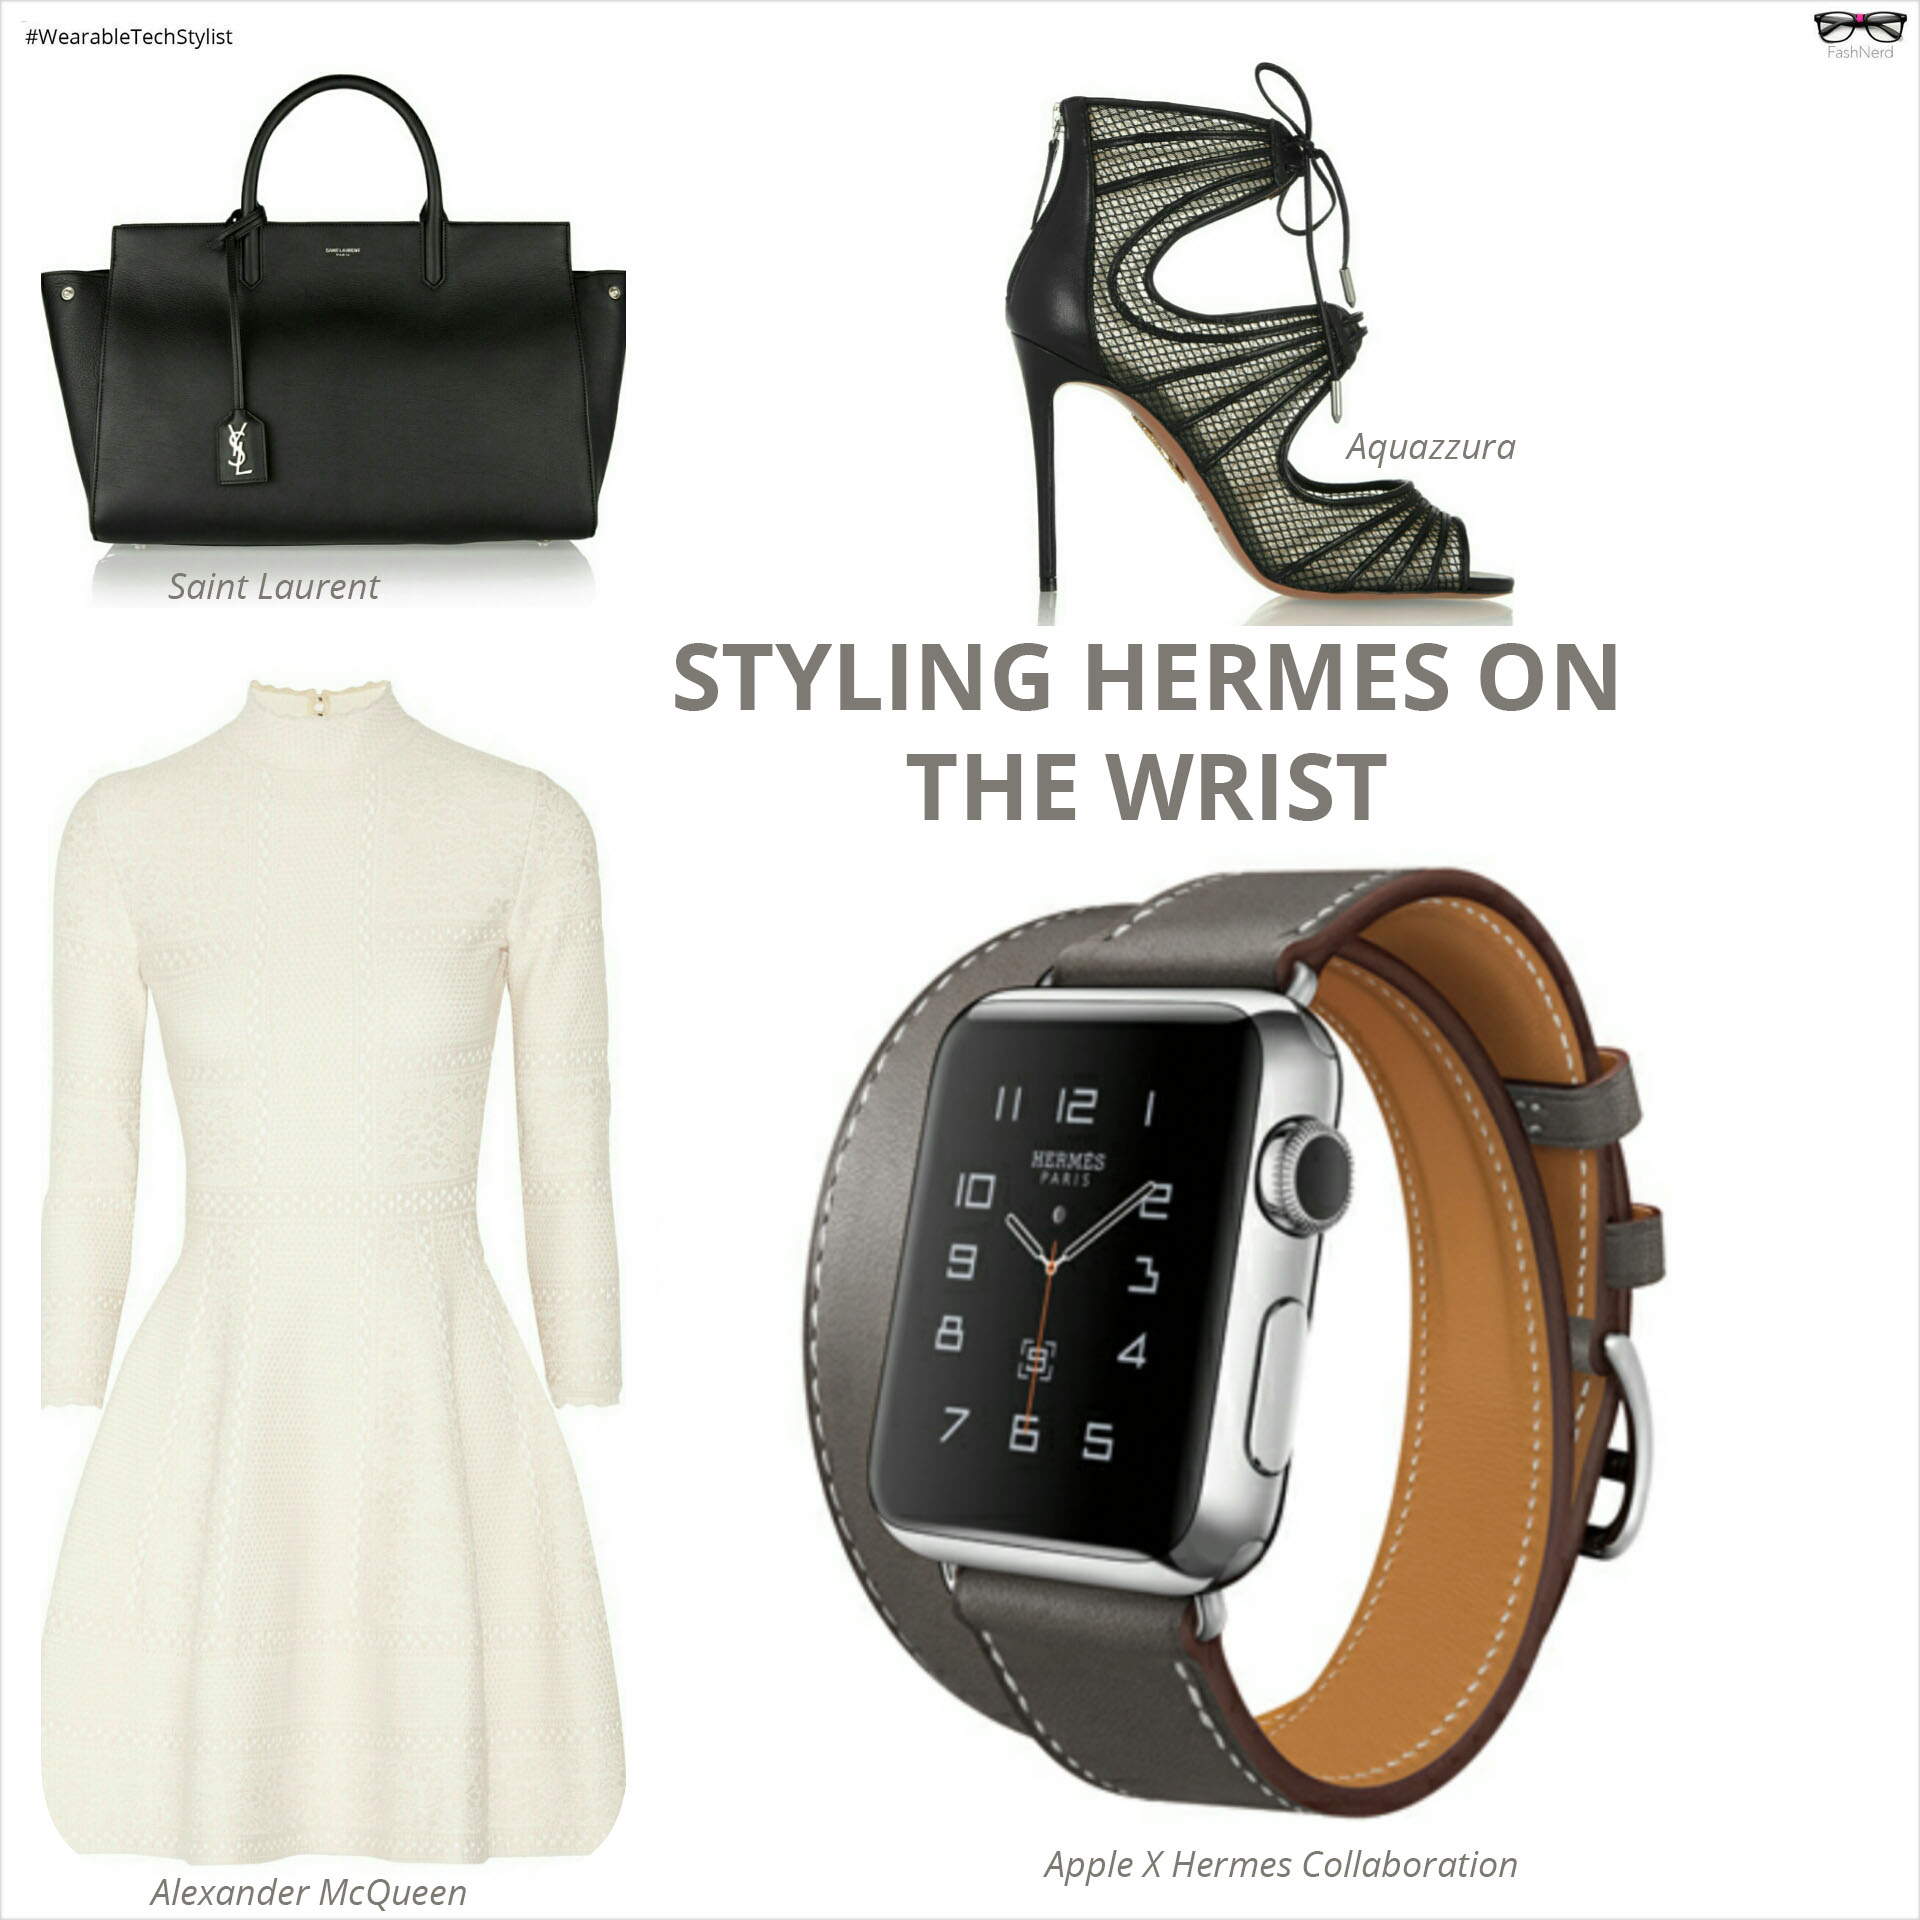 Styling Hermes on the Wrist